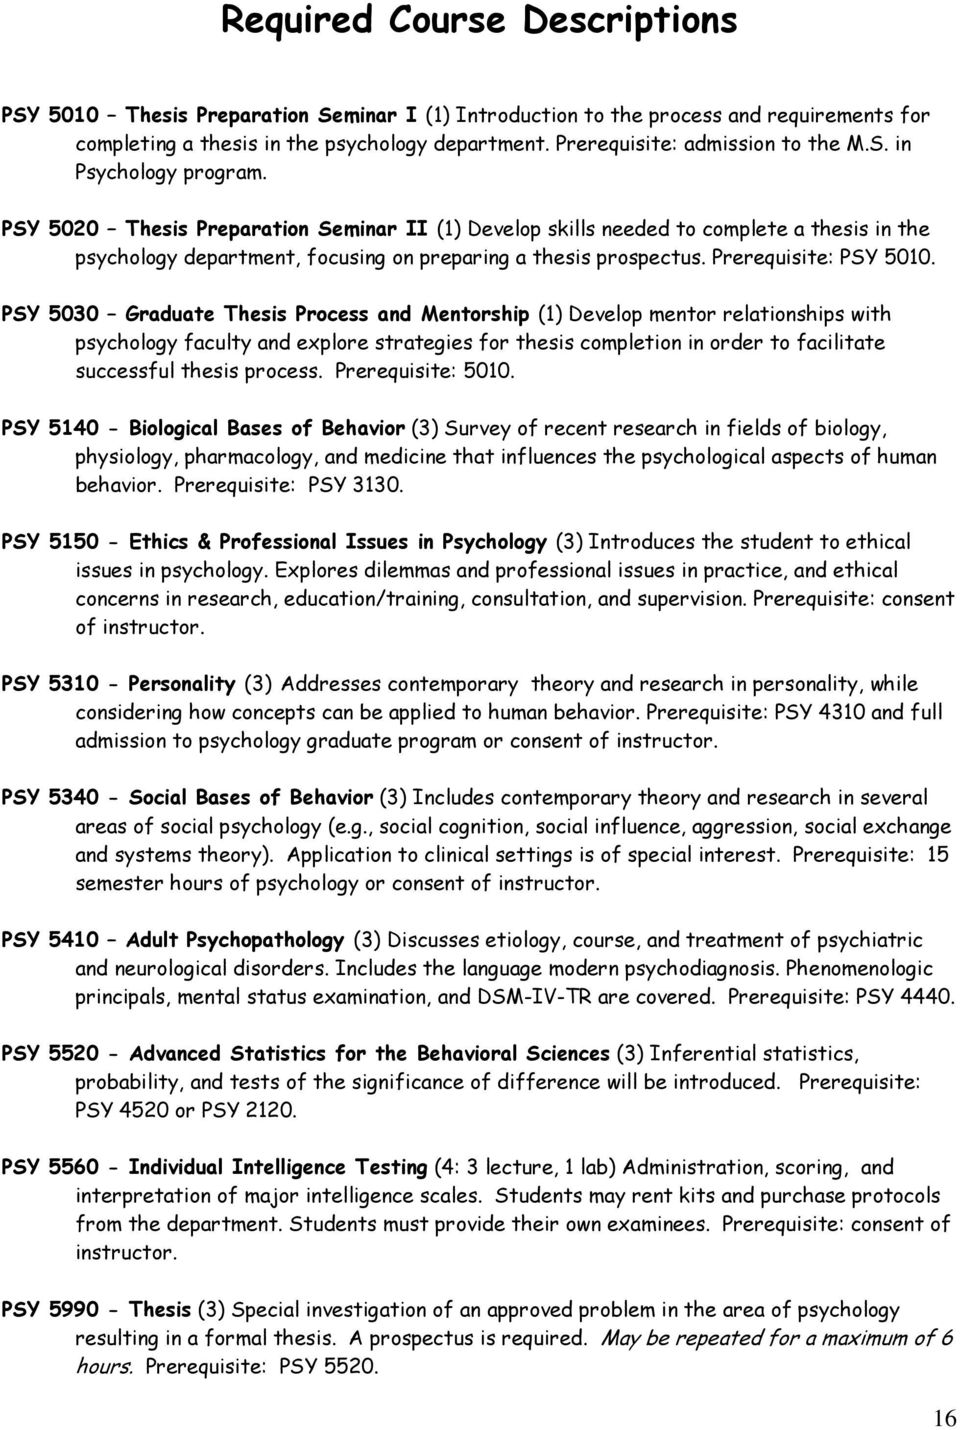 PSY 5020 Thesis Preparation Seminar II (1) Develop skills needed to complete a thesis in the psychology department, focusing on preparing a thesis prospectus. Prerequisite: PSY 5010.